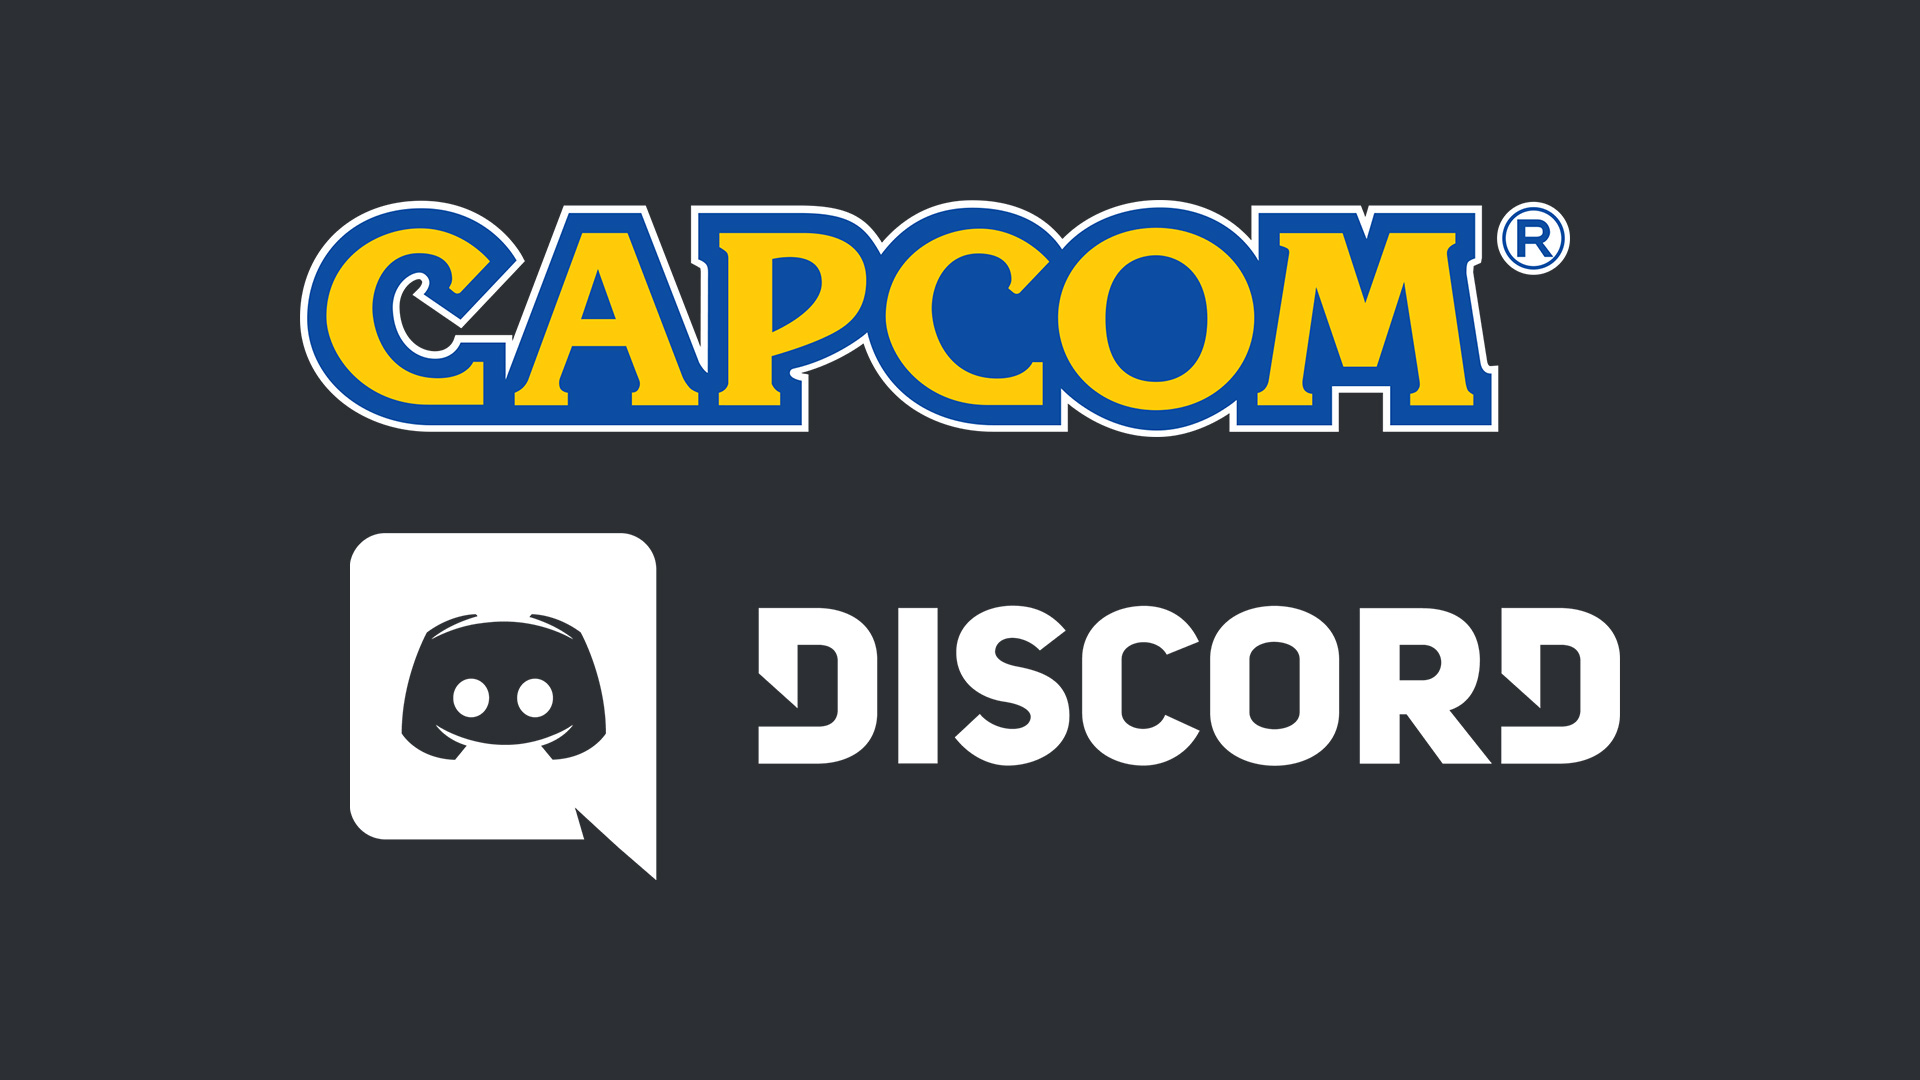 Capcom Community